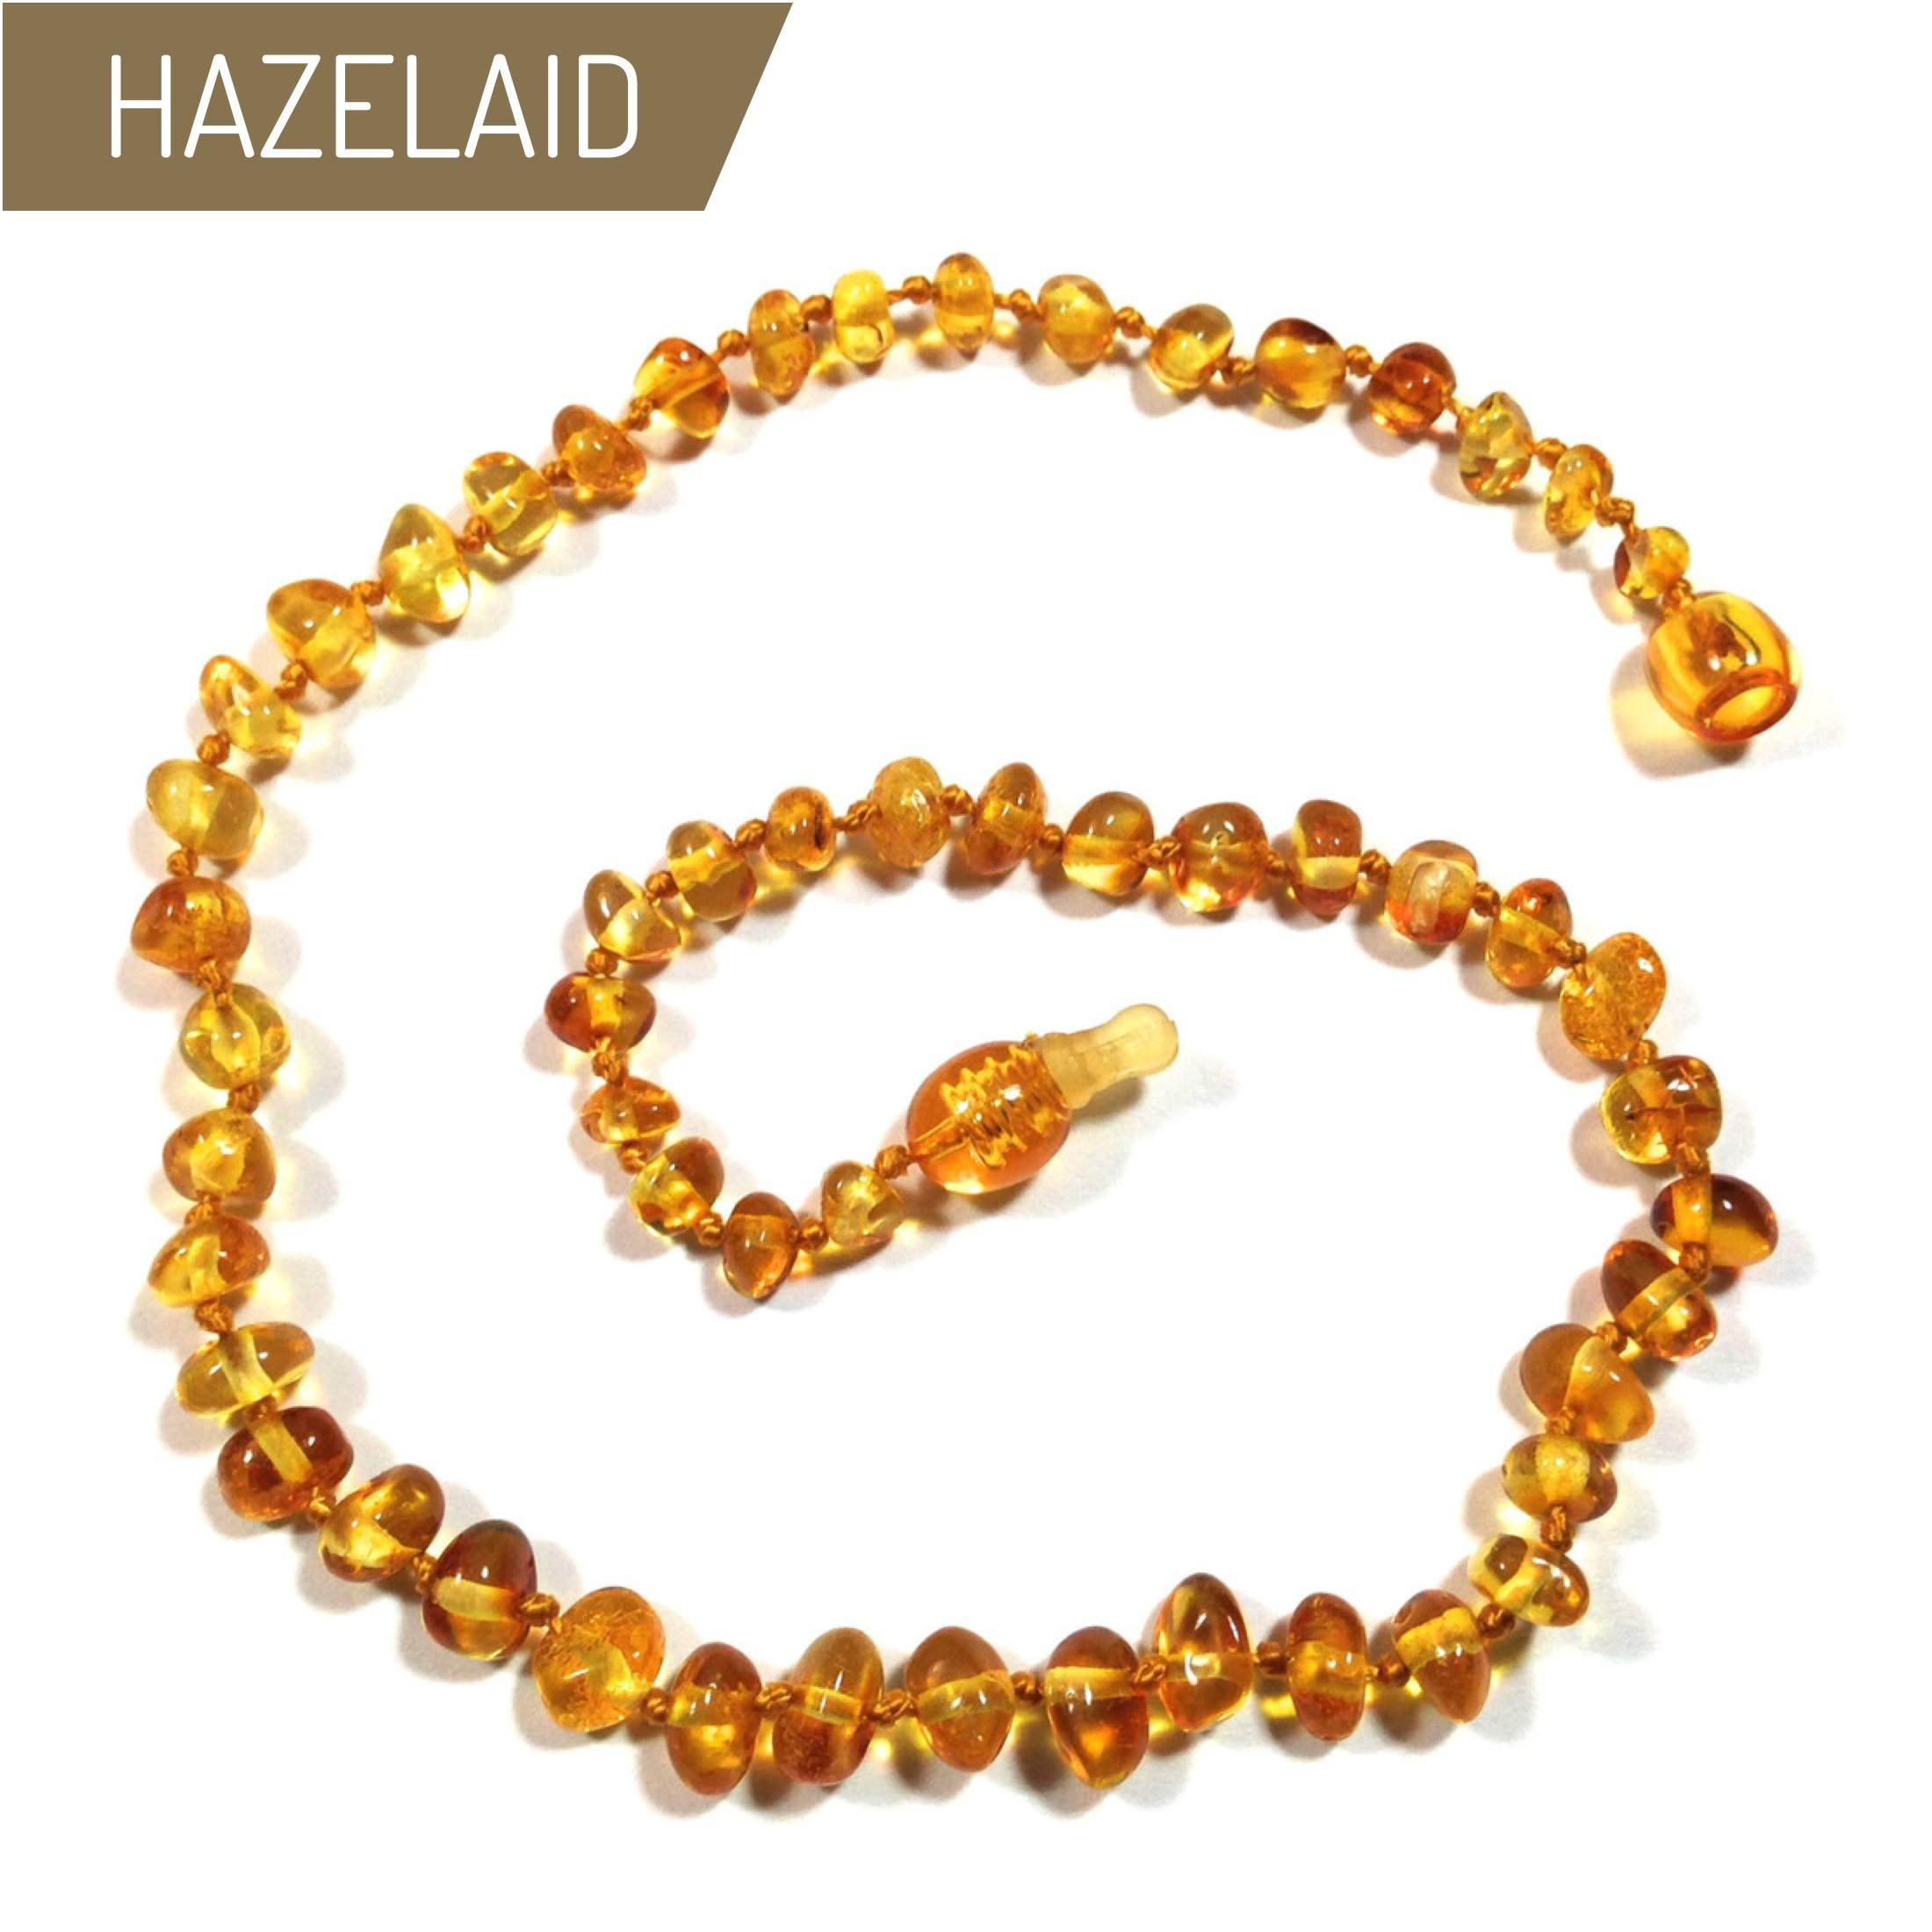 Hazelaid (TM) 12'' Pop-Clasp Baltic Amber Honey Necklace